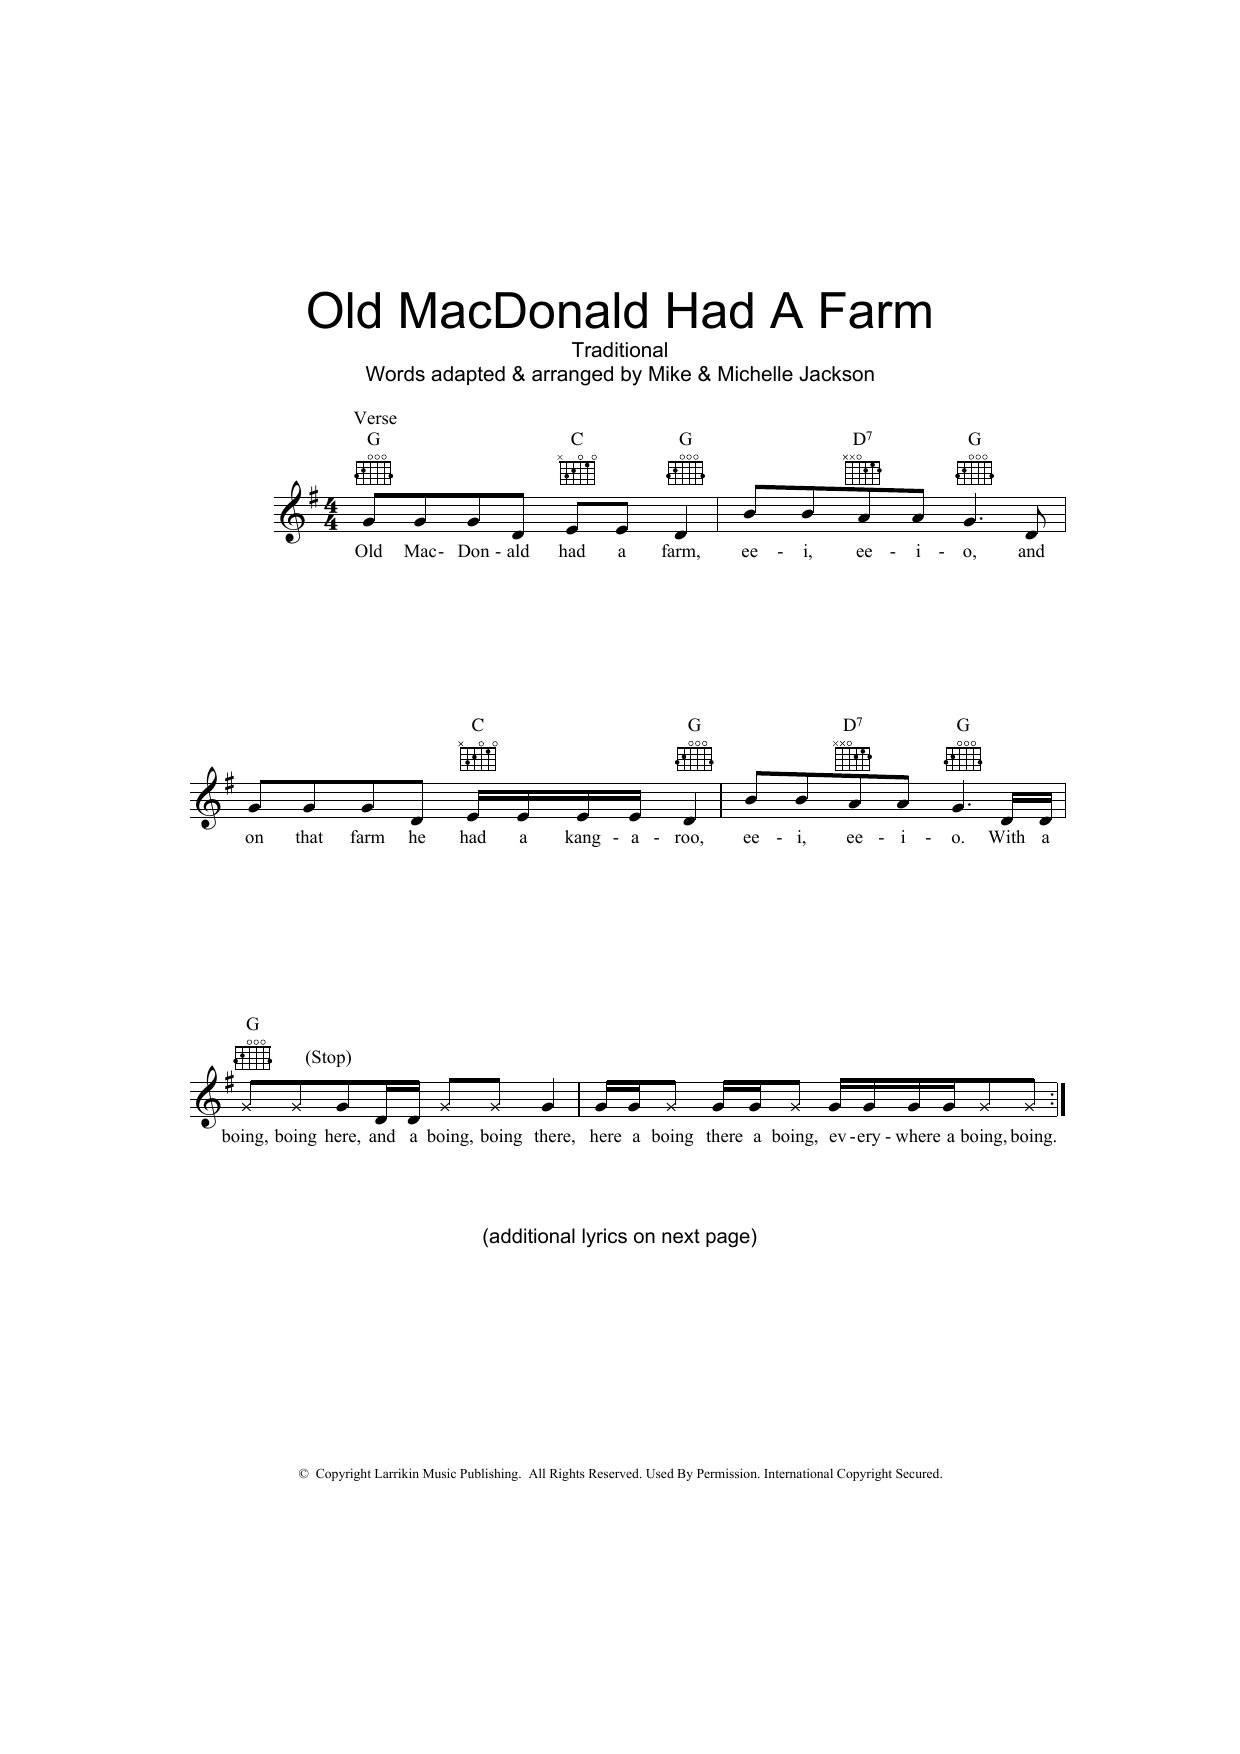 Traditional - Old MacDonald Had A Farm (Australian version)